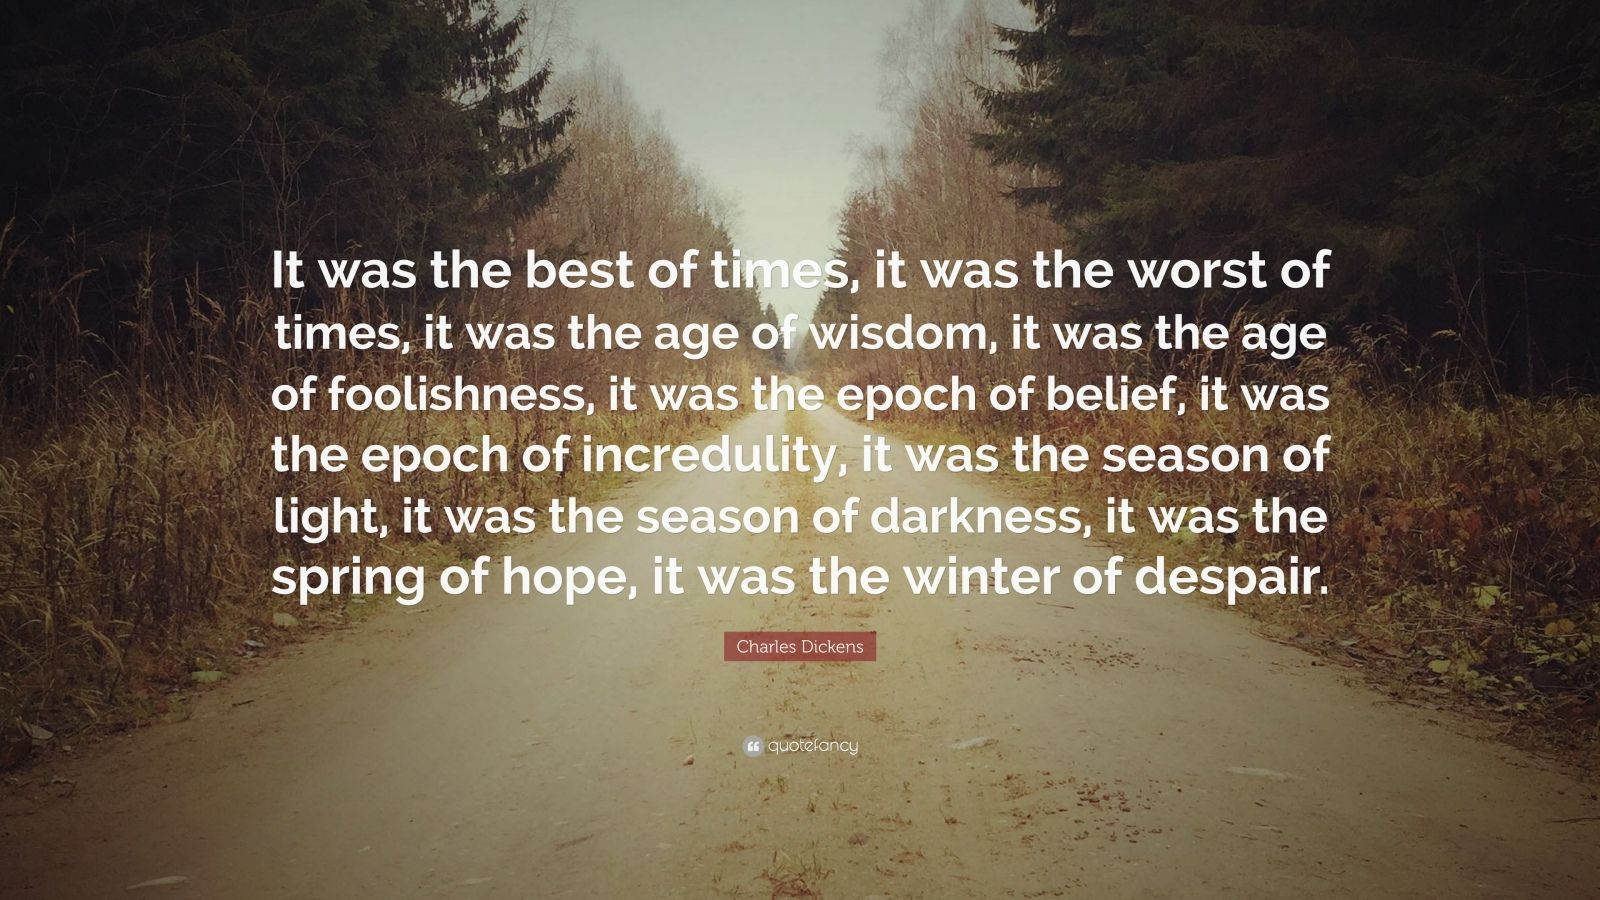 Charles Dickens Quote It Was The Best Of Times It Was The Worst Of Times It Was The Age Of Wisdom It Life Quotes To Live By Funny Quotes About Life